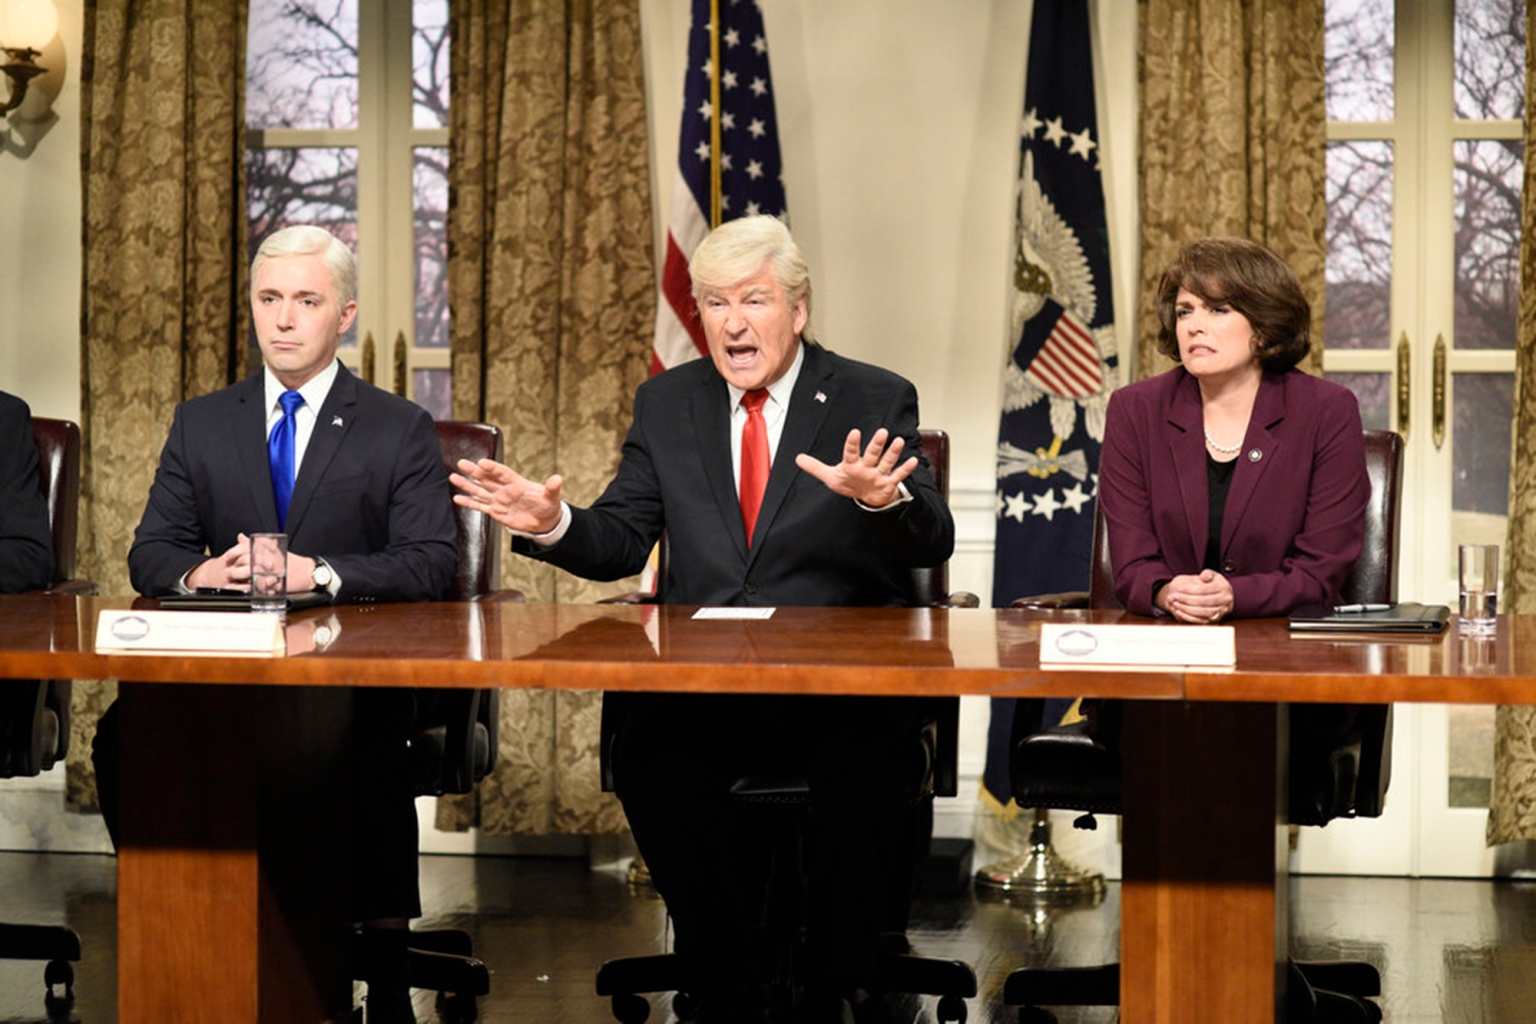 'Saturday Night Live' has suspended production because of the coronavirus